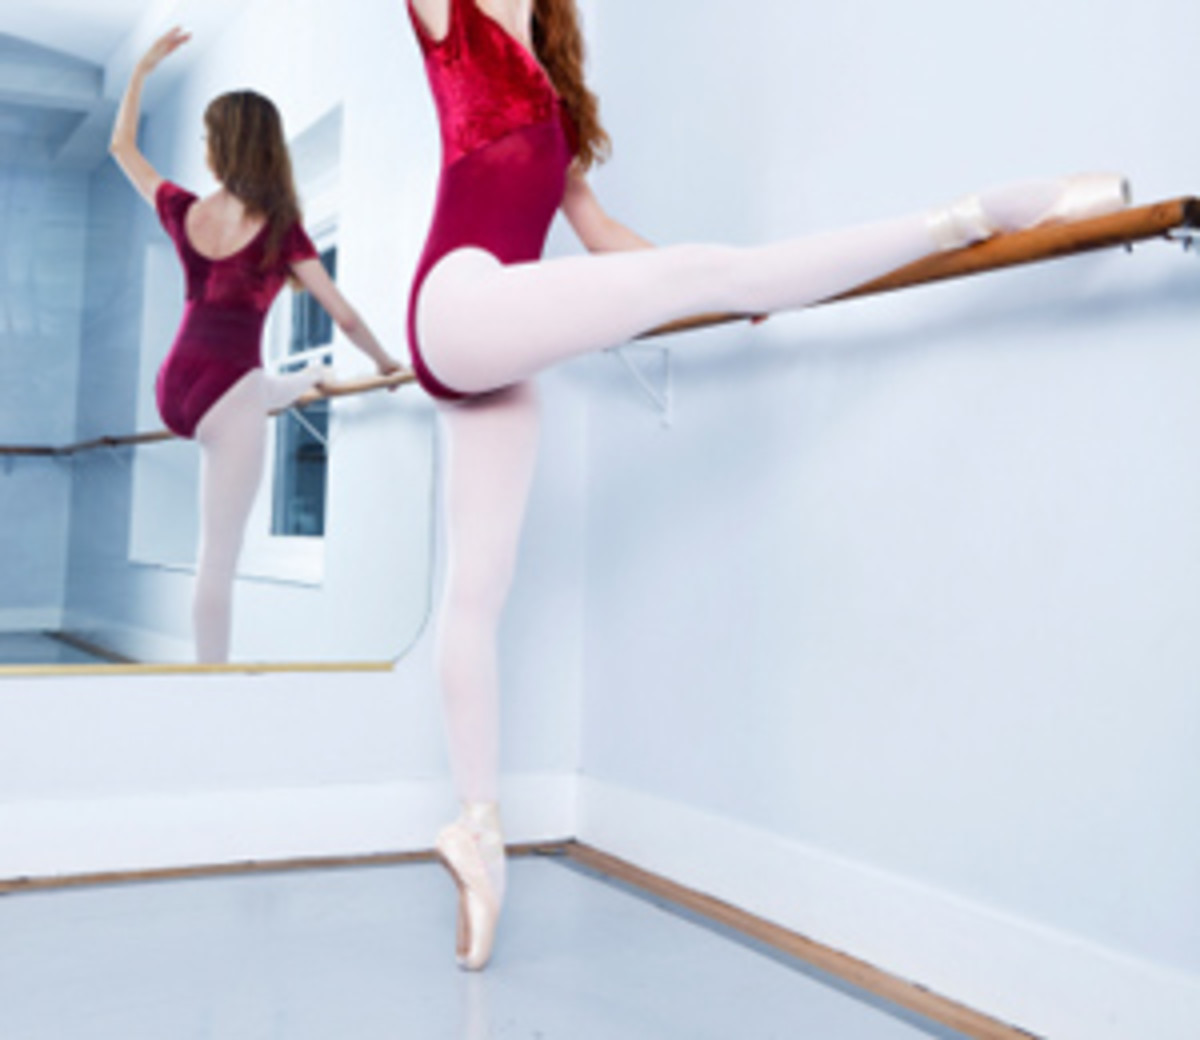 ballerina hamstring stretch illustrated using a ballerina bar for assistance